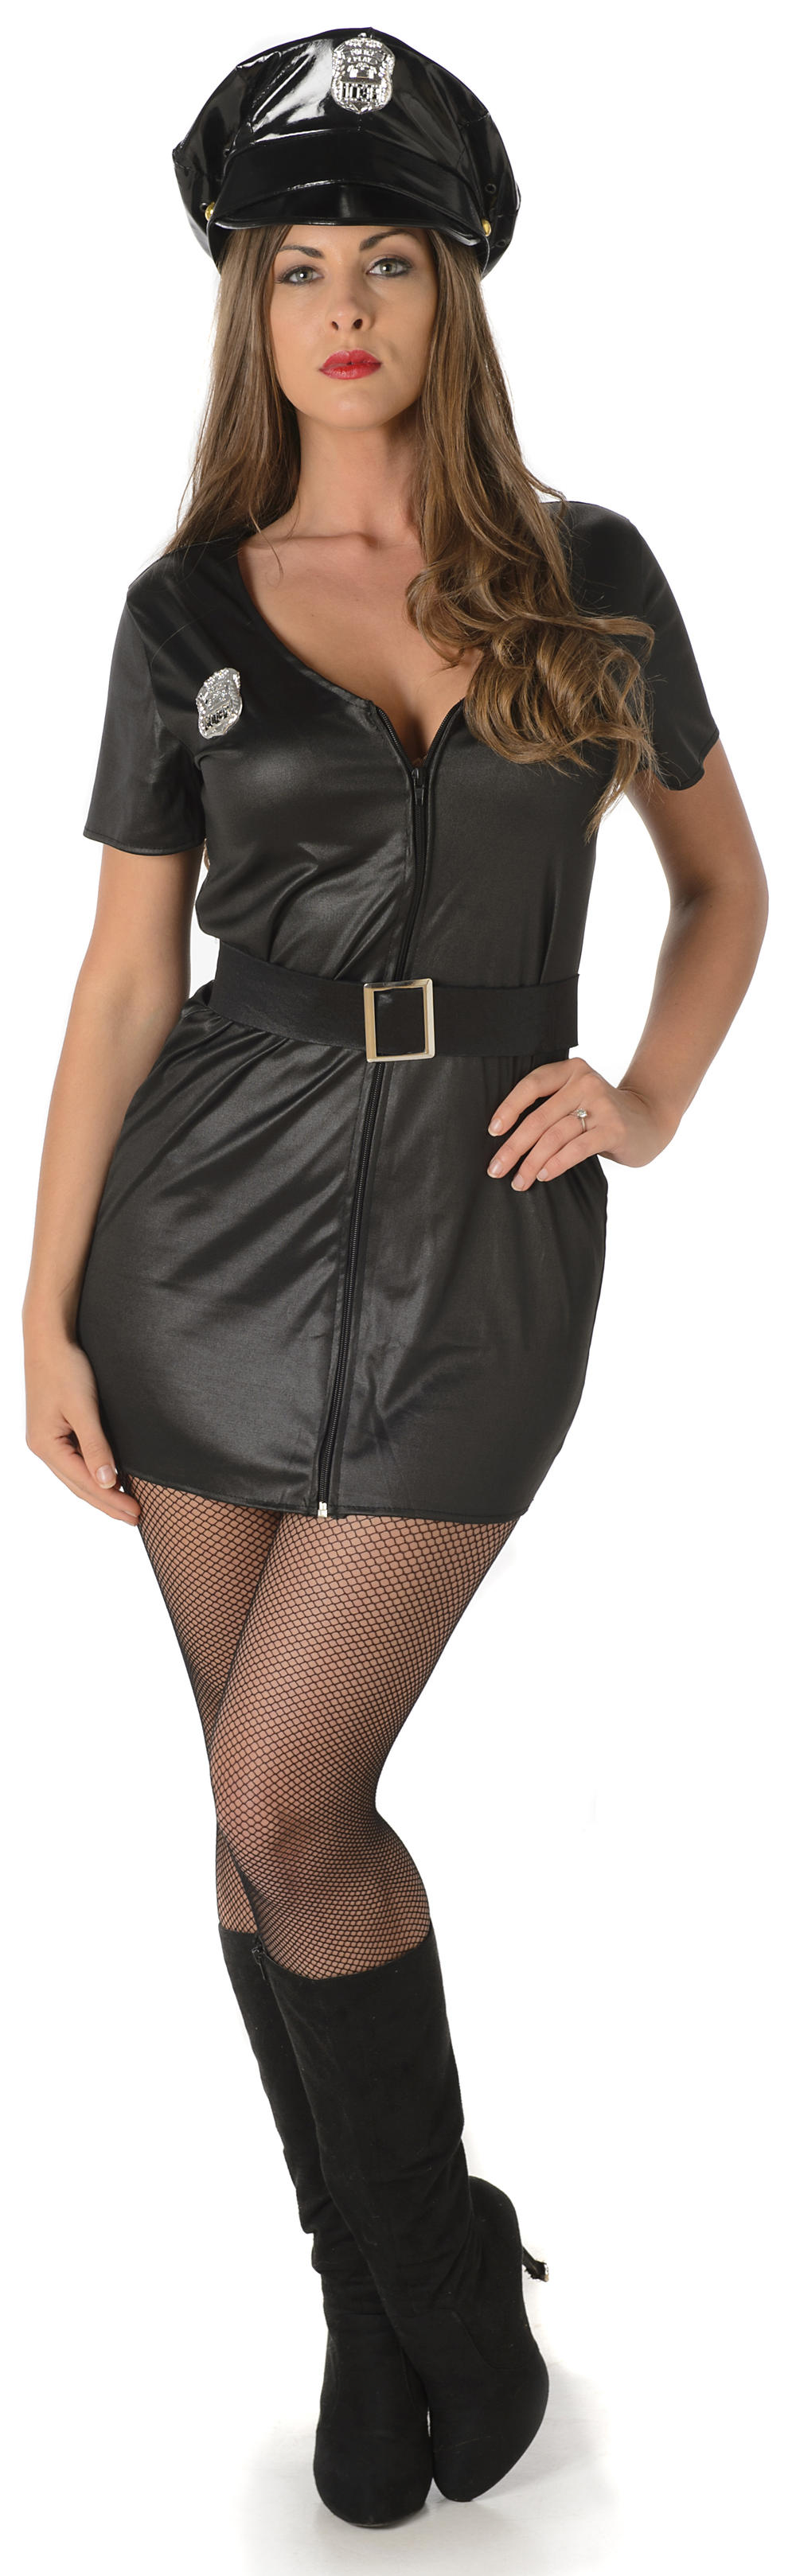 Risky Cop Ladies Fancy Dress Sexy Police Officer Uniform Adults Womens Costume